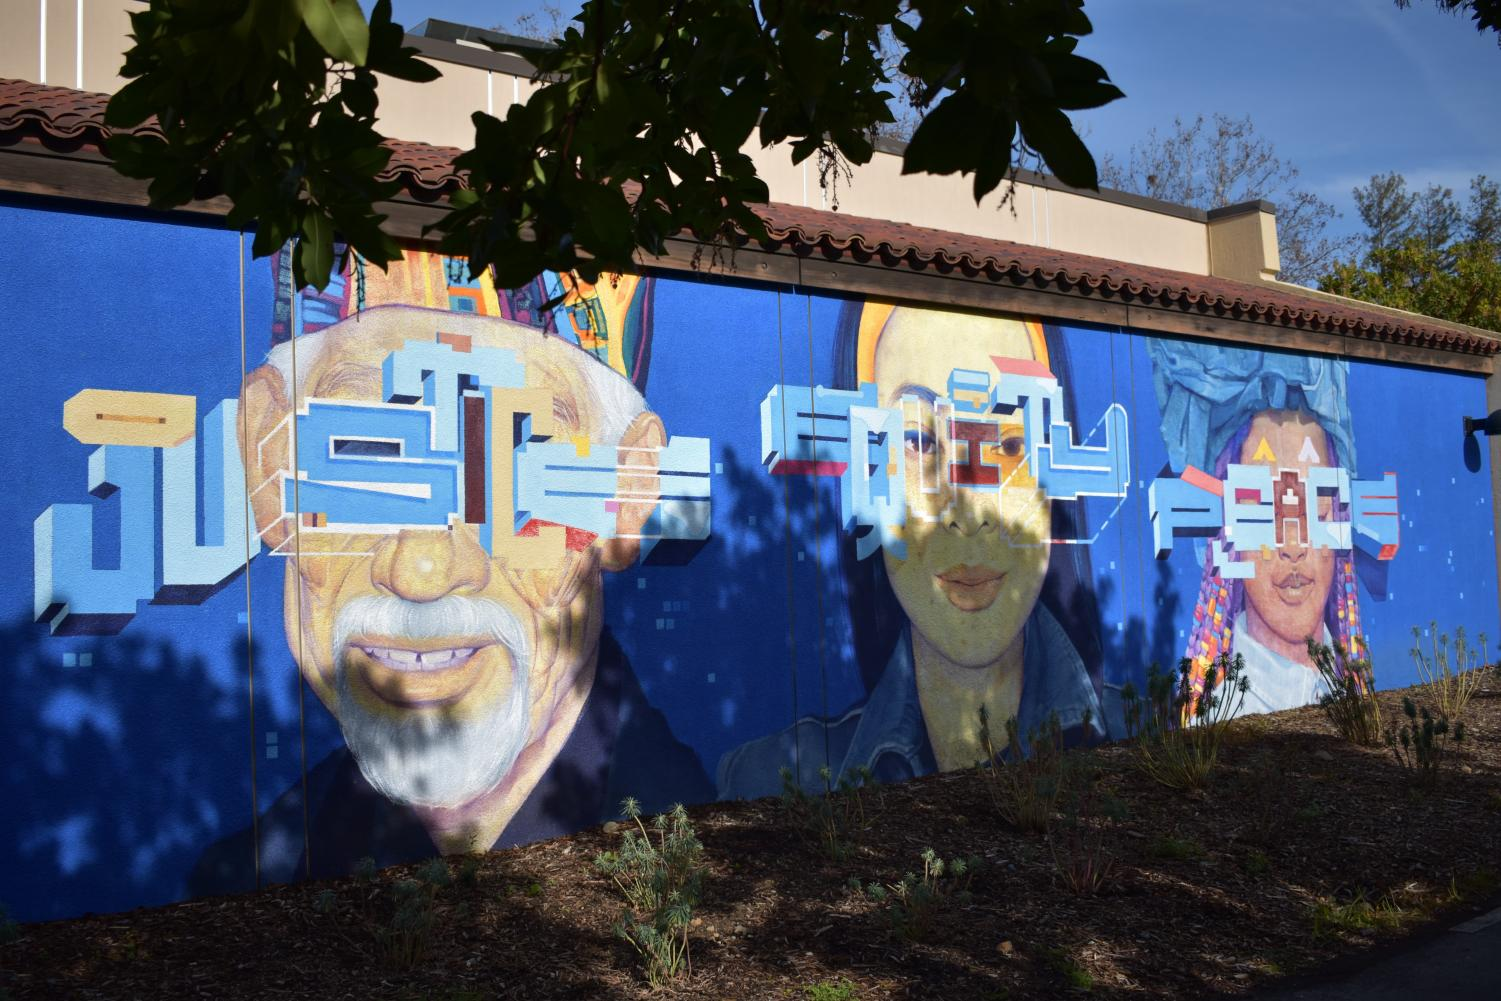 Justice, Equity Peace mural S-Quad